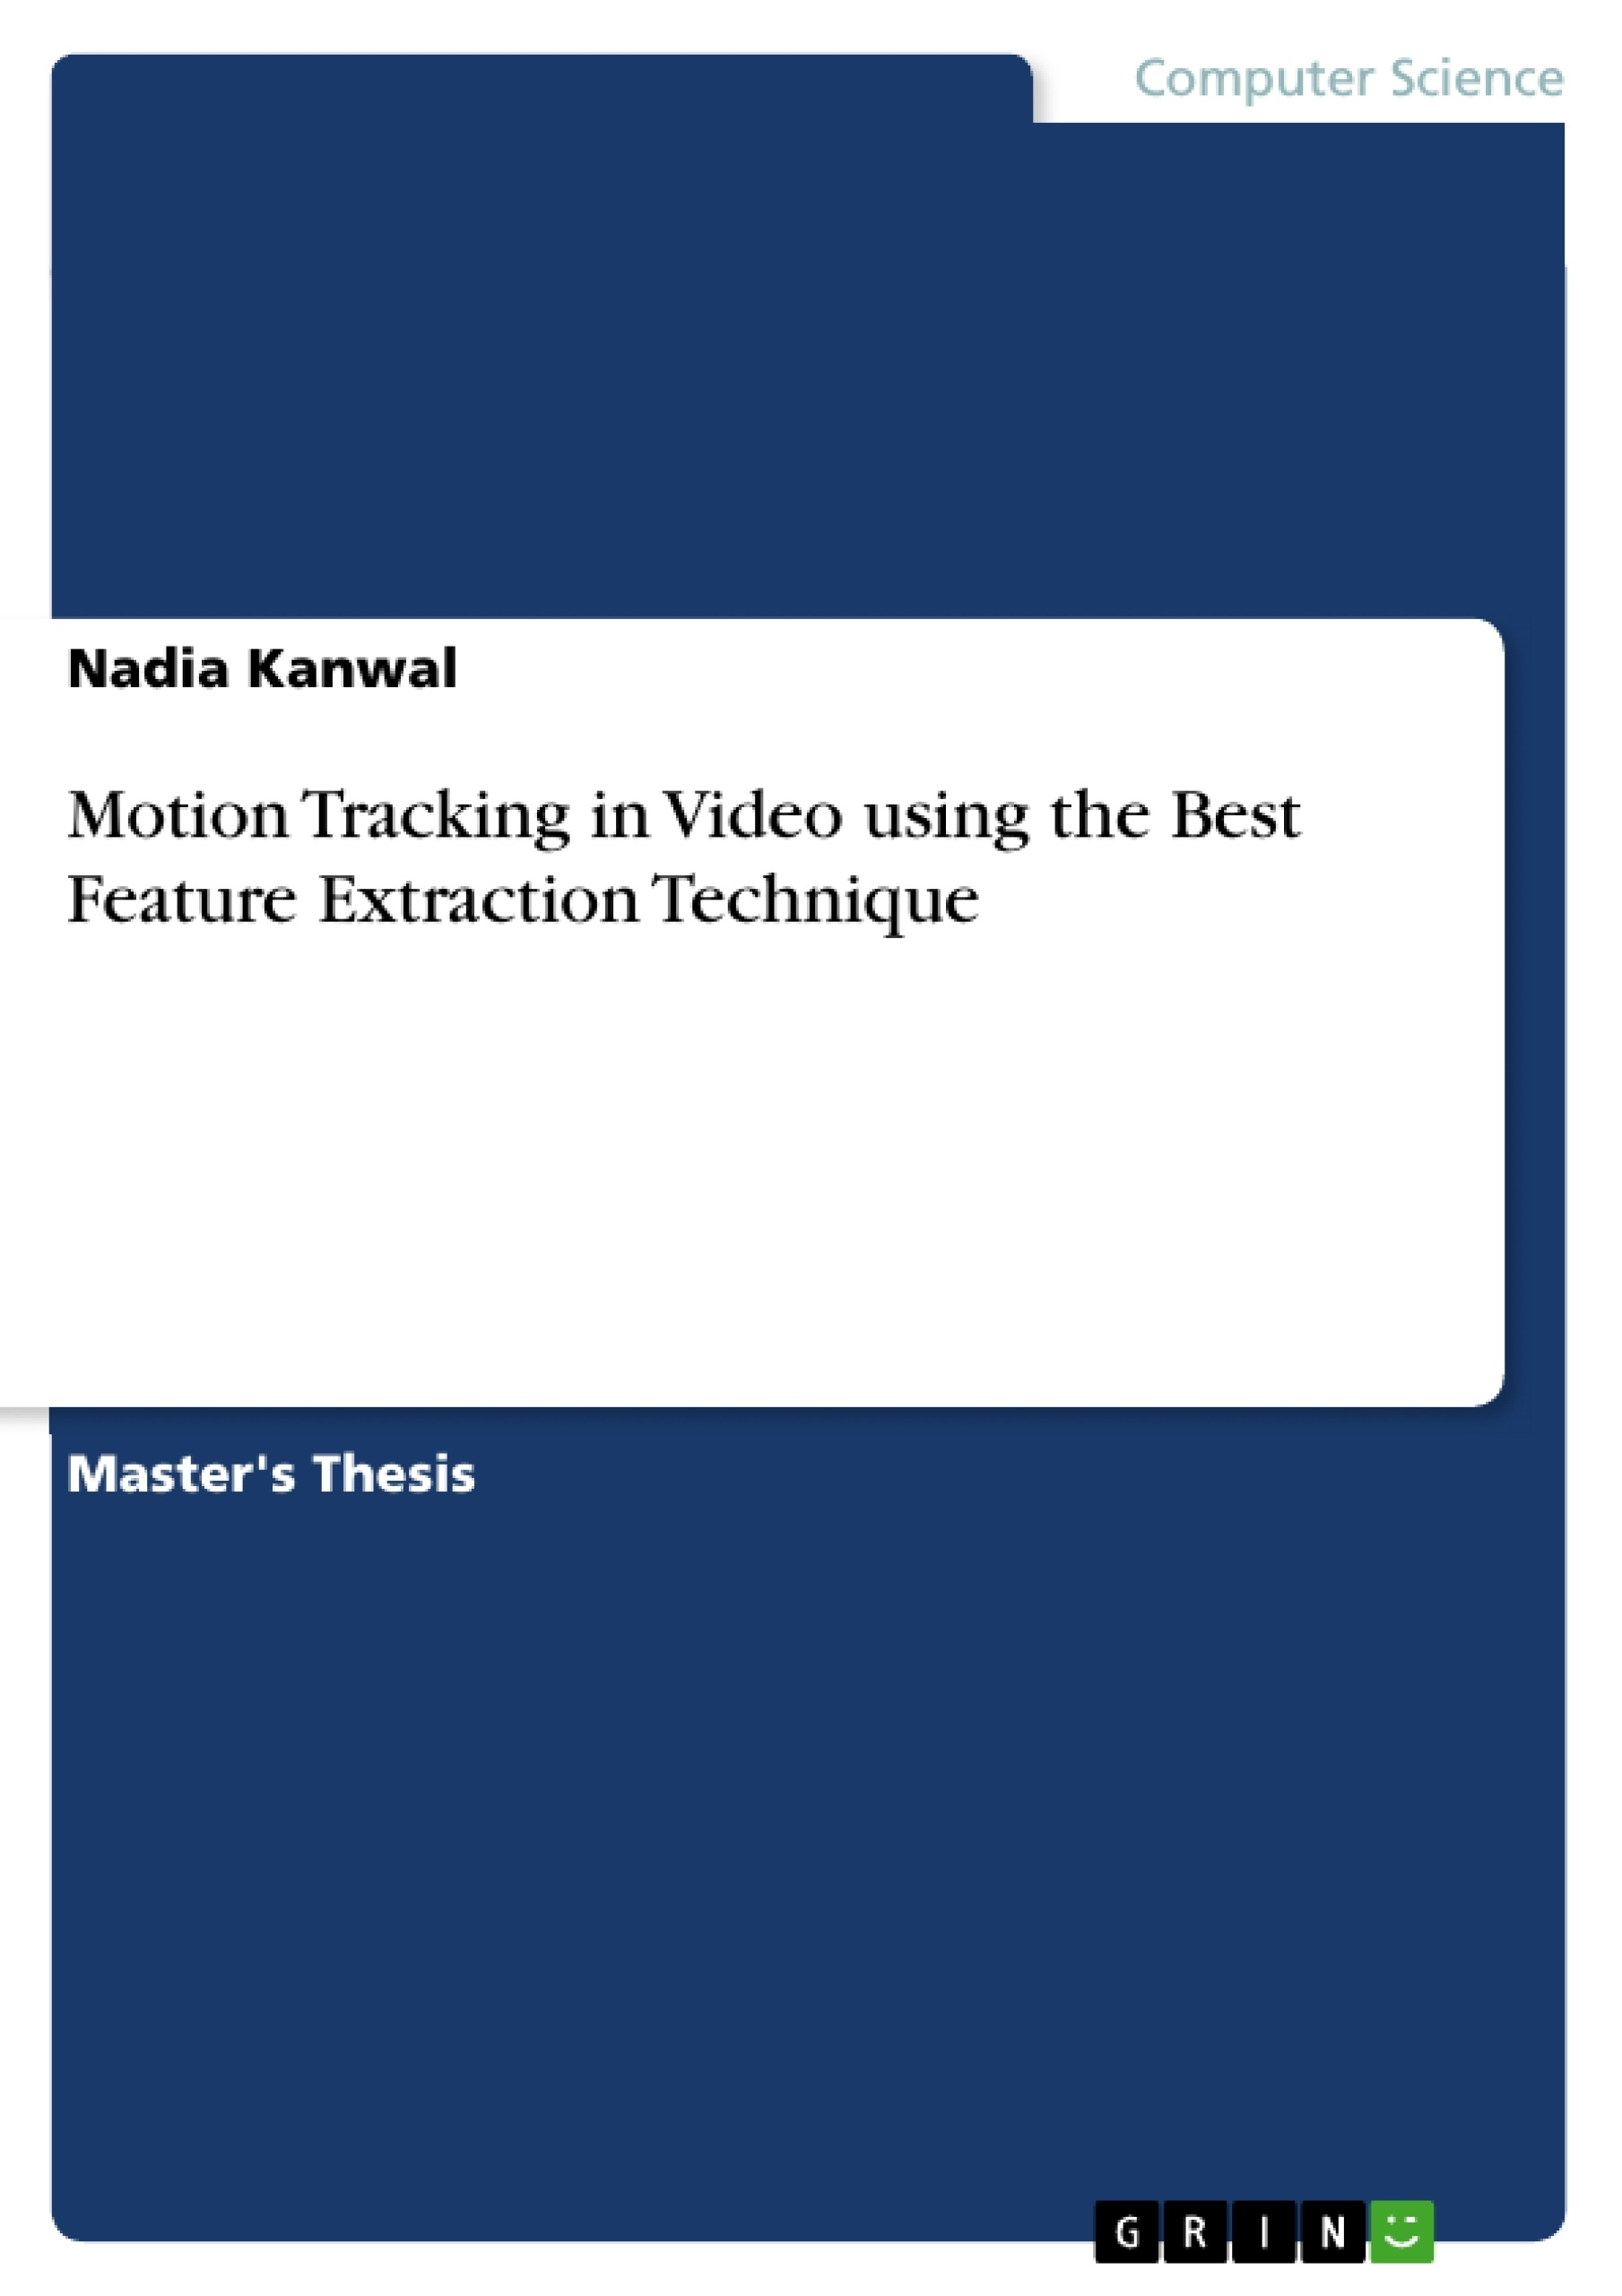 Title: Motion Tracking in Video using the Best Feature Extraction Technique